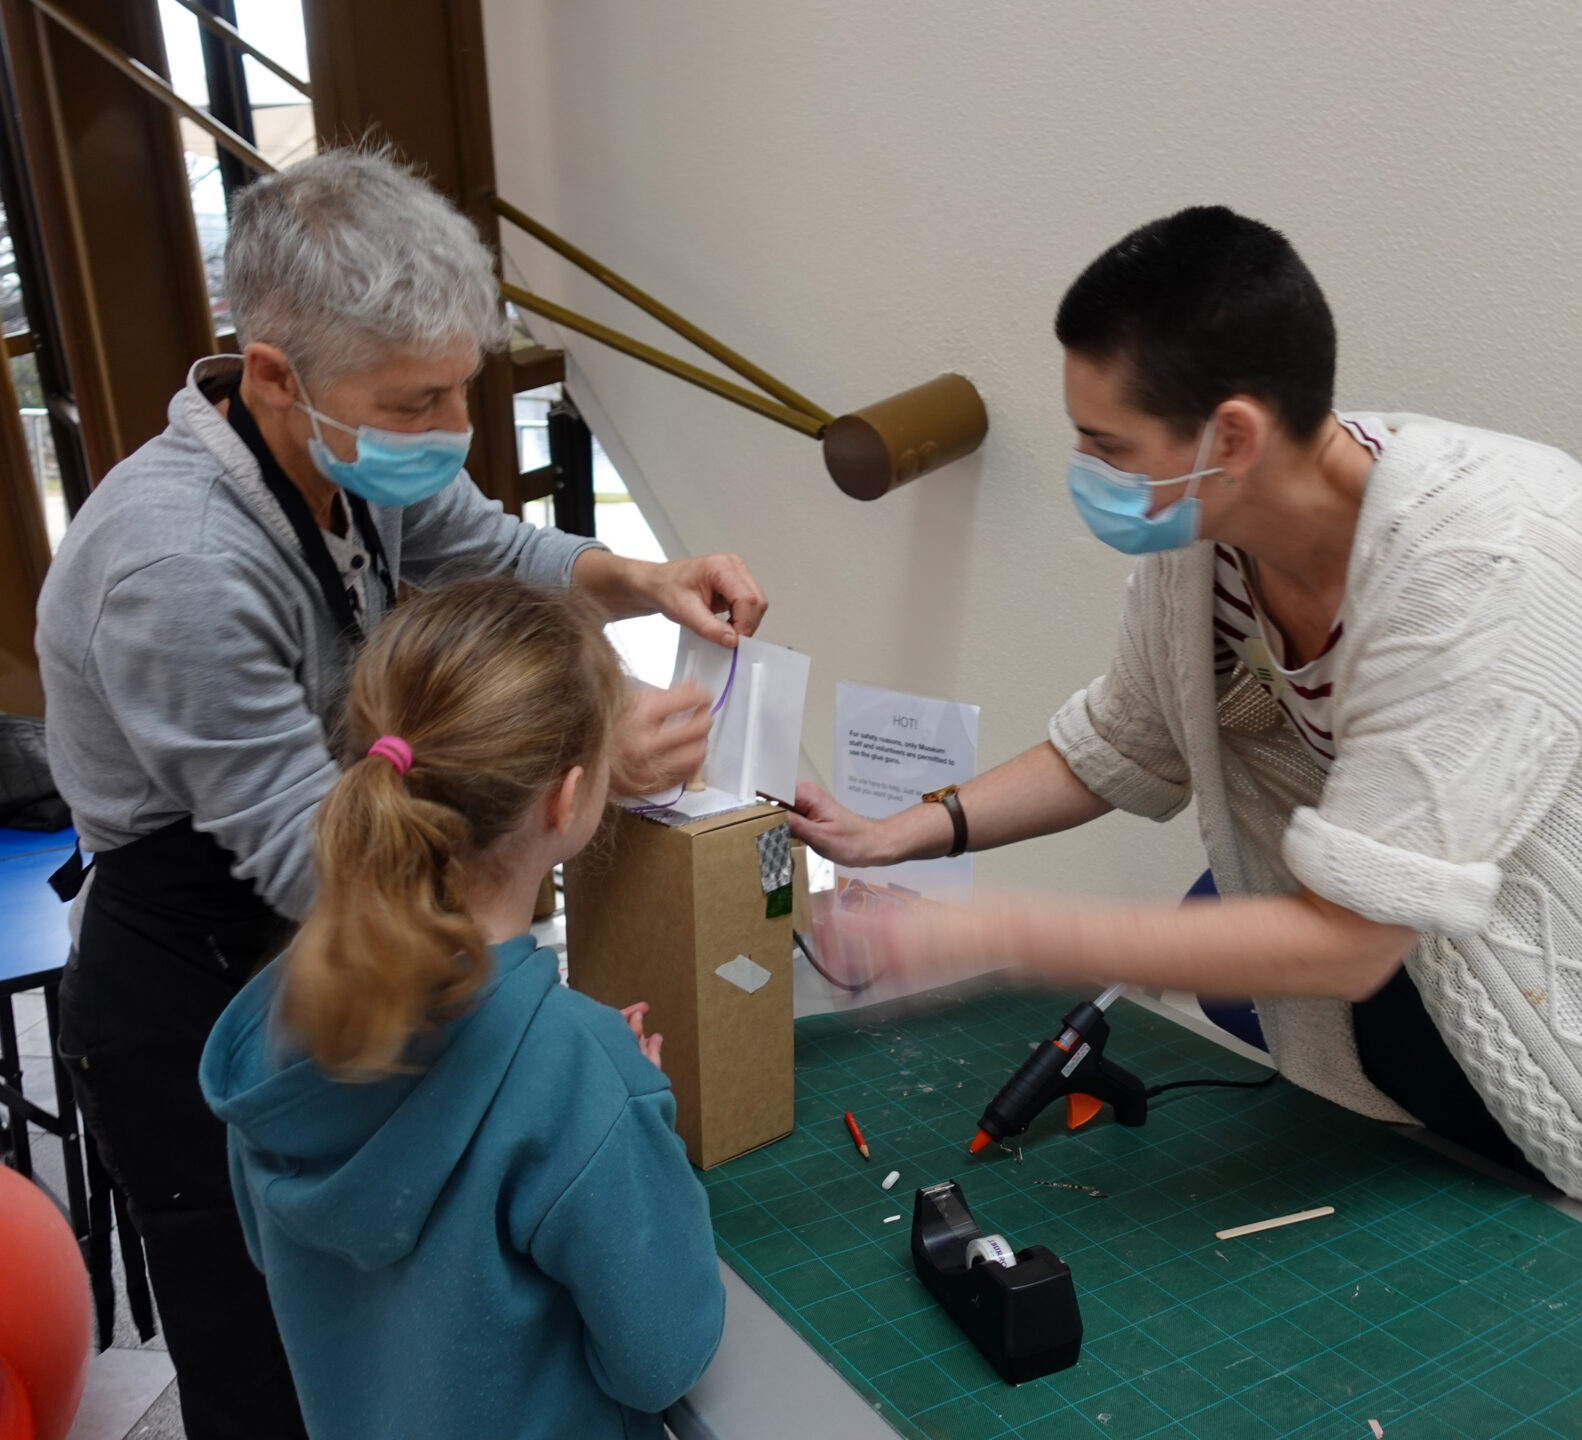 Two adults and one child gluing paper and other materials to a cardboard box